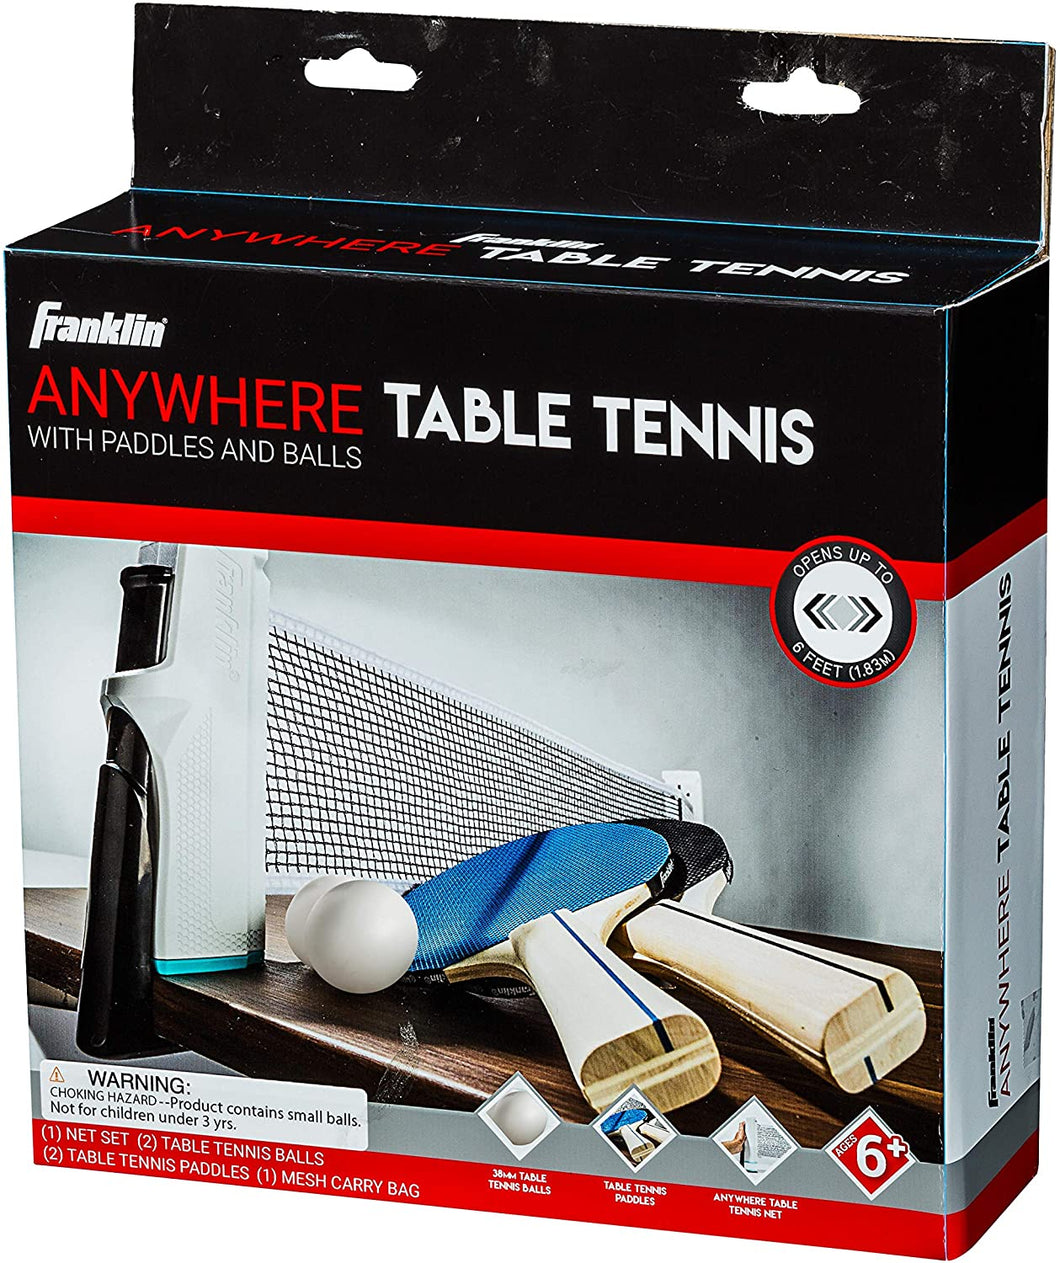 Franklin Anywhere Table Tennis